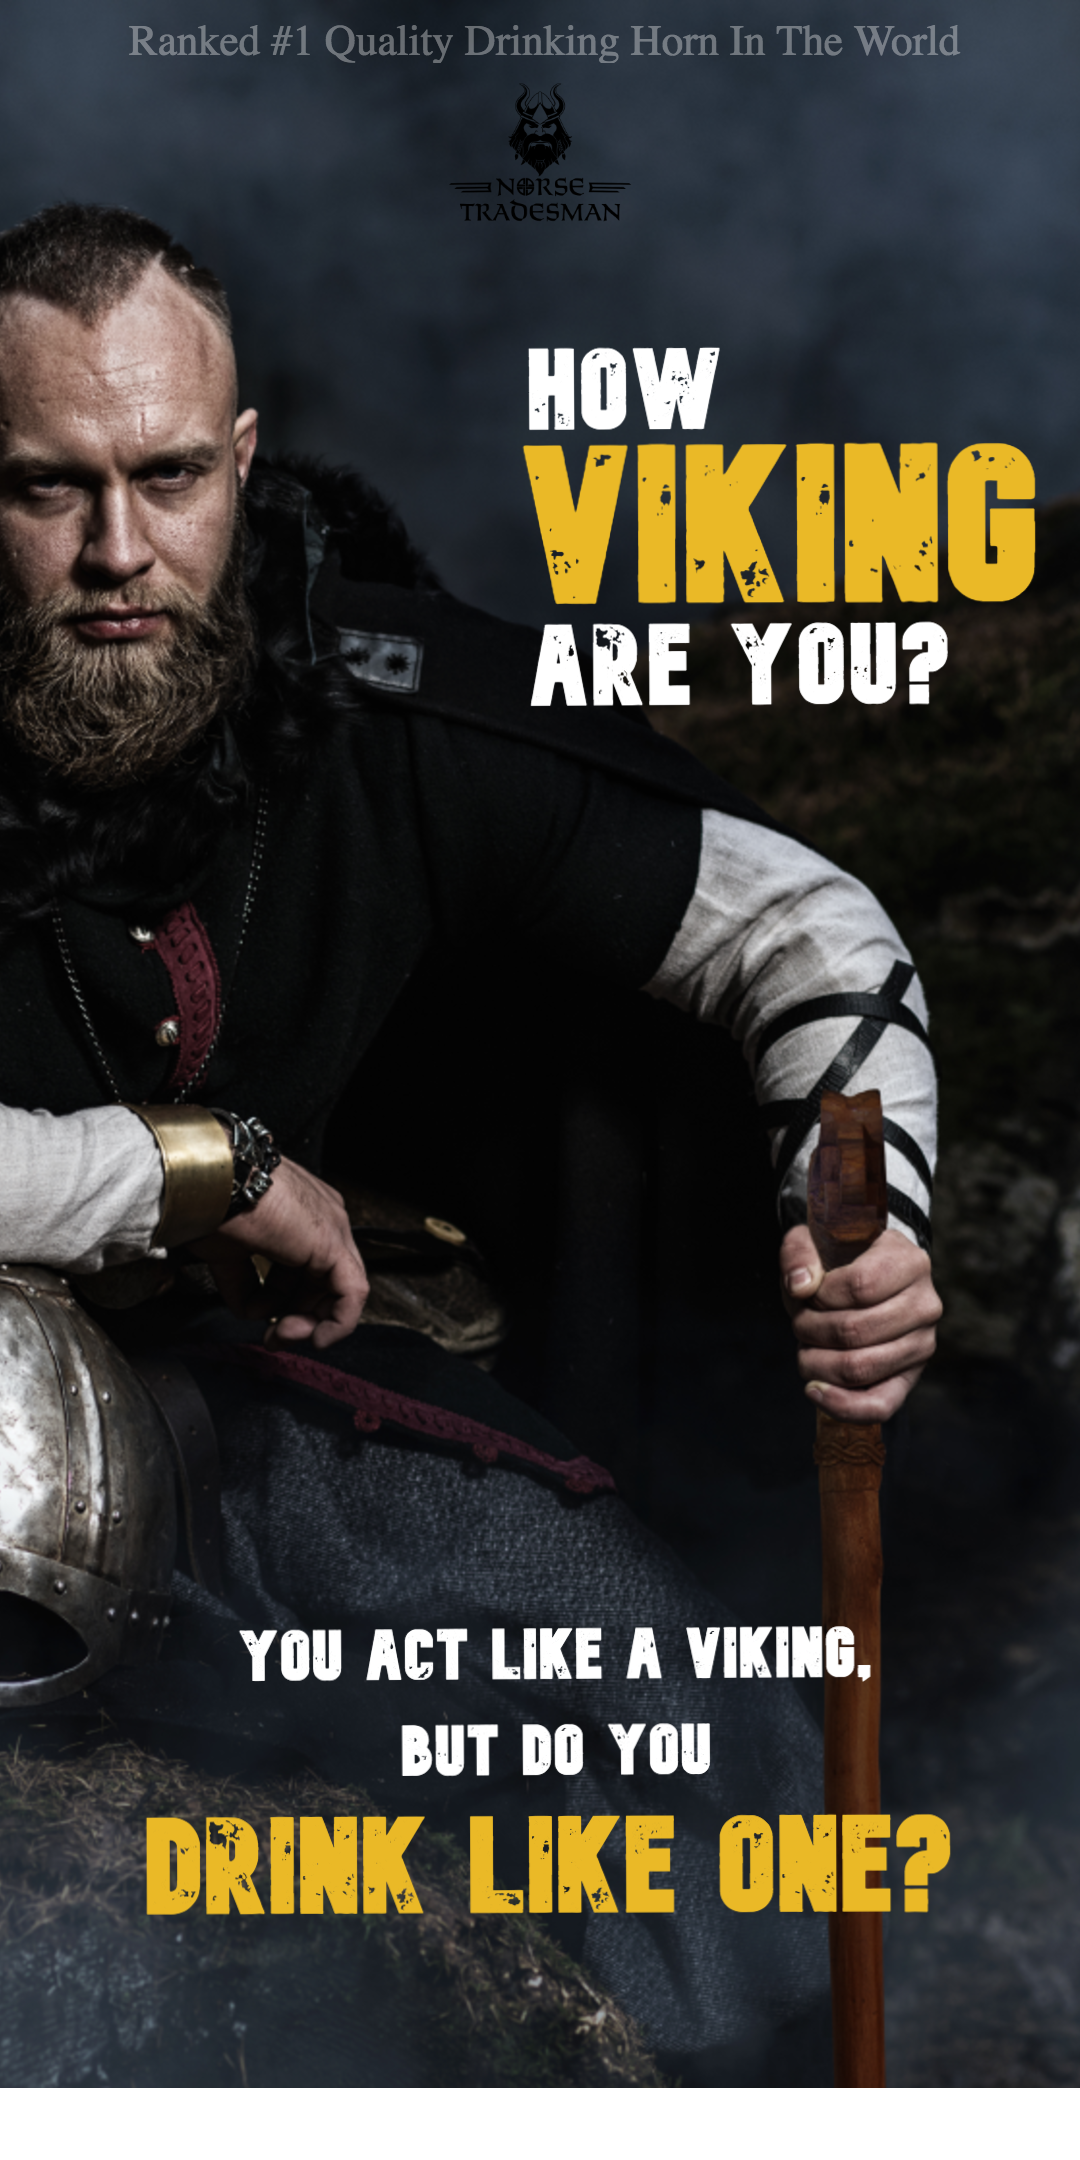 the #1 ranked viking drinking horns in the world. how viking are you?